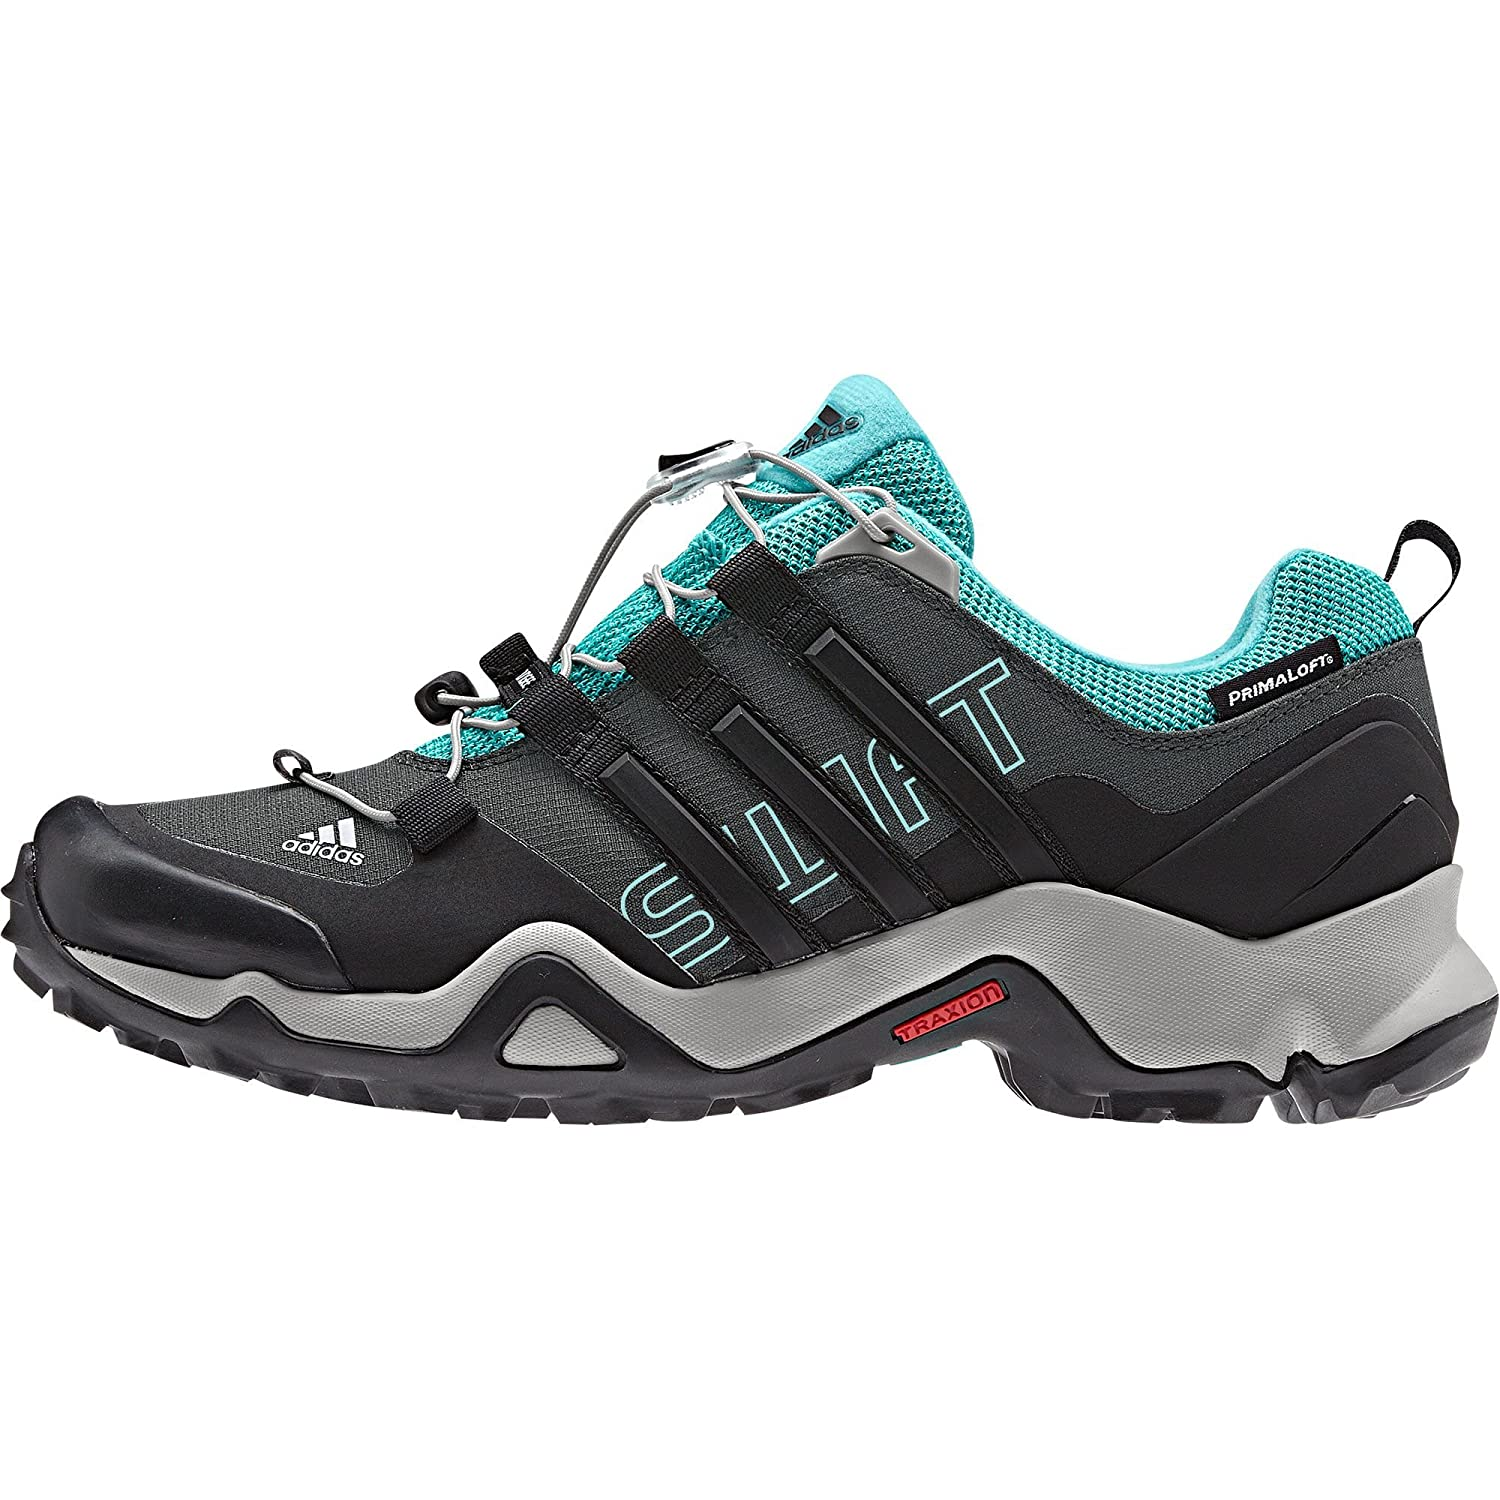 adidas M17470 Women's Terrex Swift Climaheat W Footwear, Solid Grey/Core Black/Vivid Mint